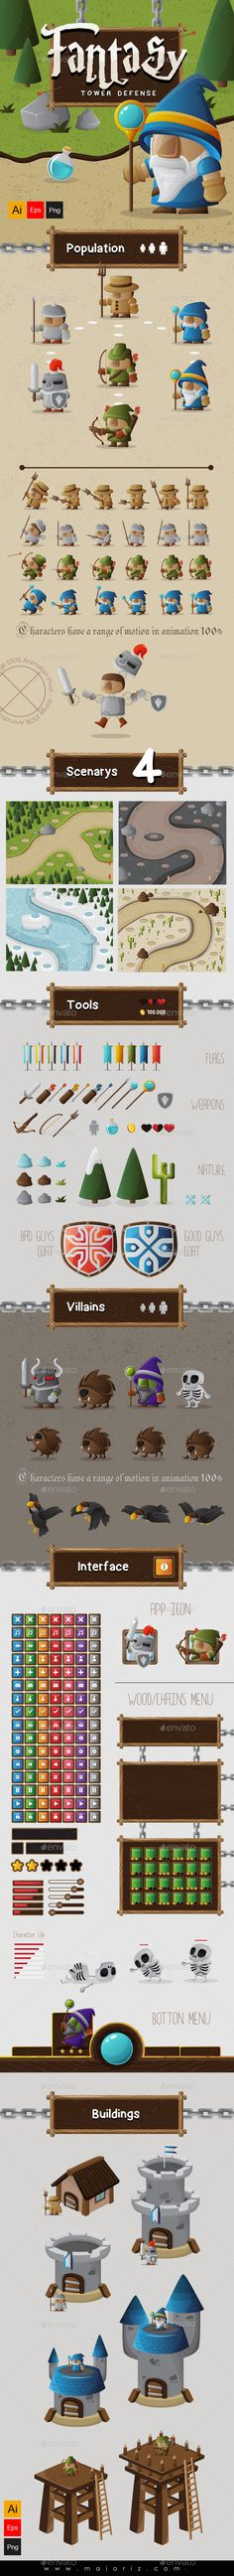 Fantasy Tower Defense Assets  EPS Template • Download ➝ https://graphicriver.net/item/fantasy-tower-defense-assets/9423242?ref=pxcr